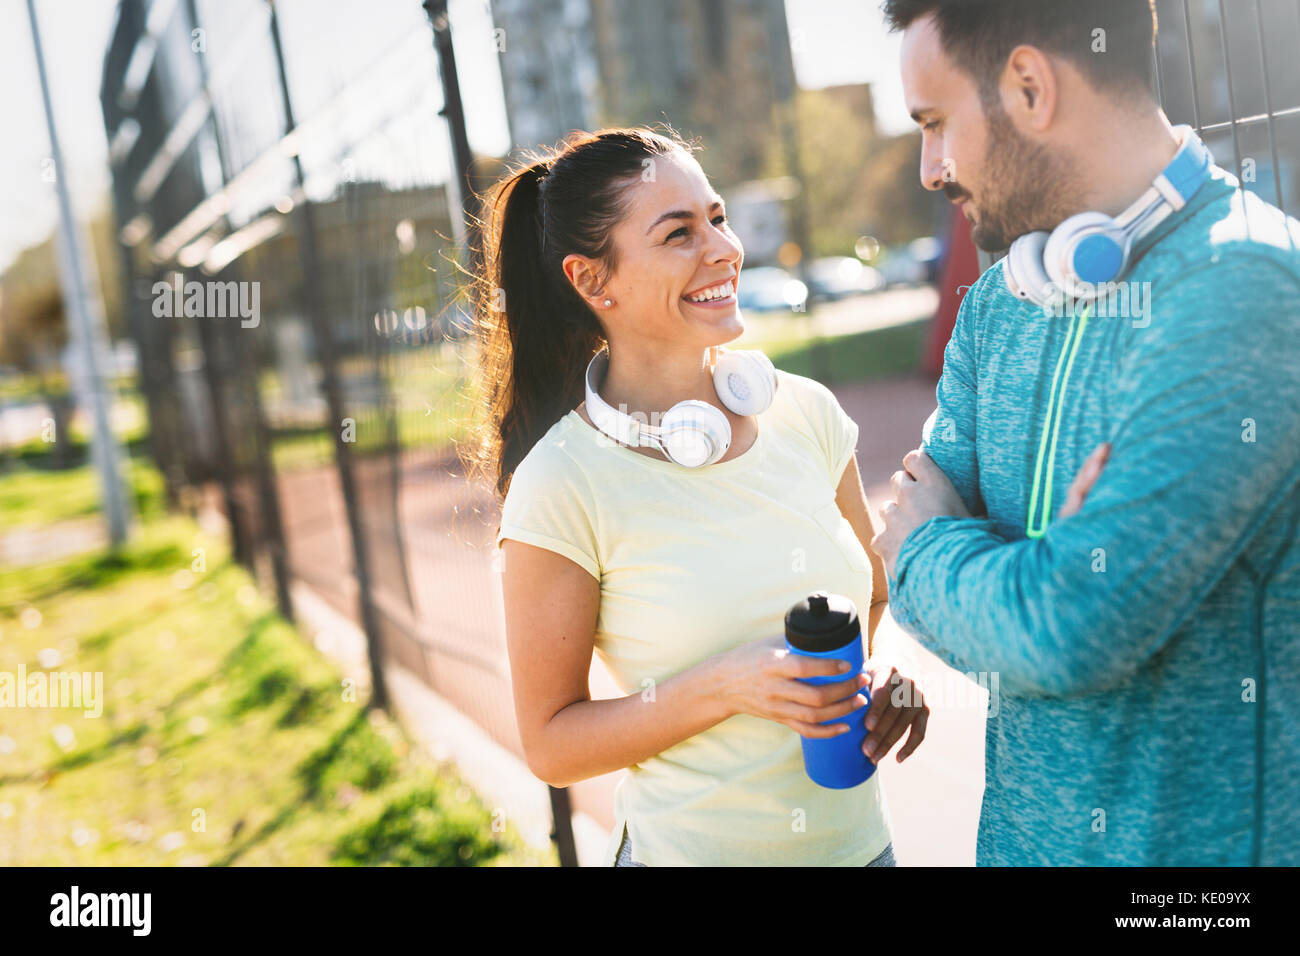 Handsome man and attractive woman talking on court - Stock Image